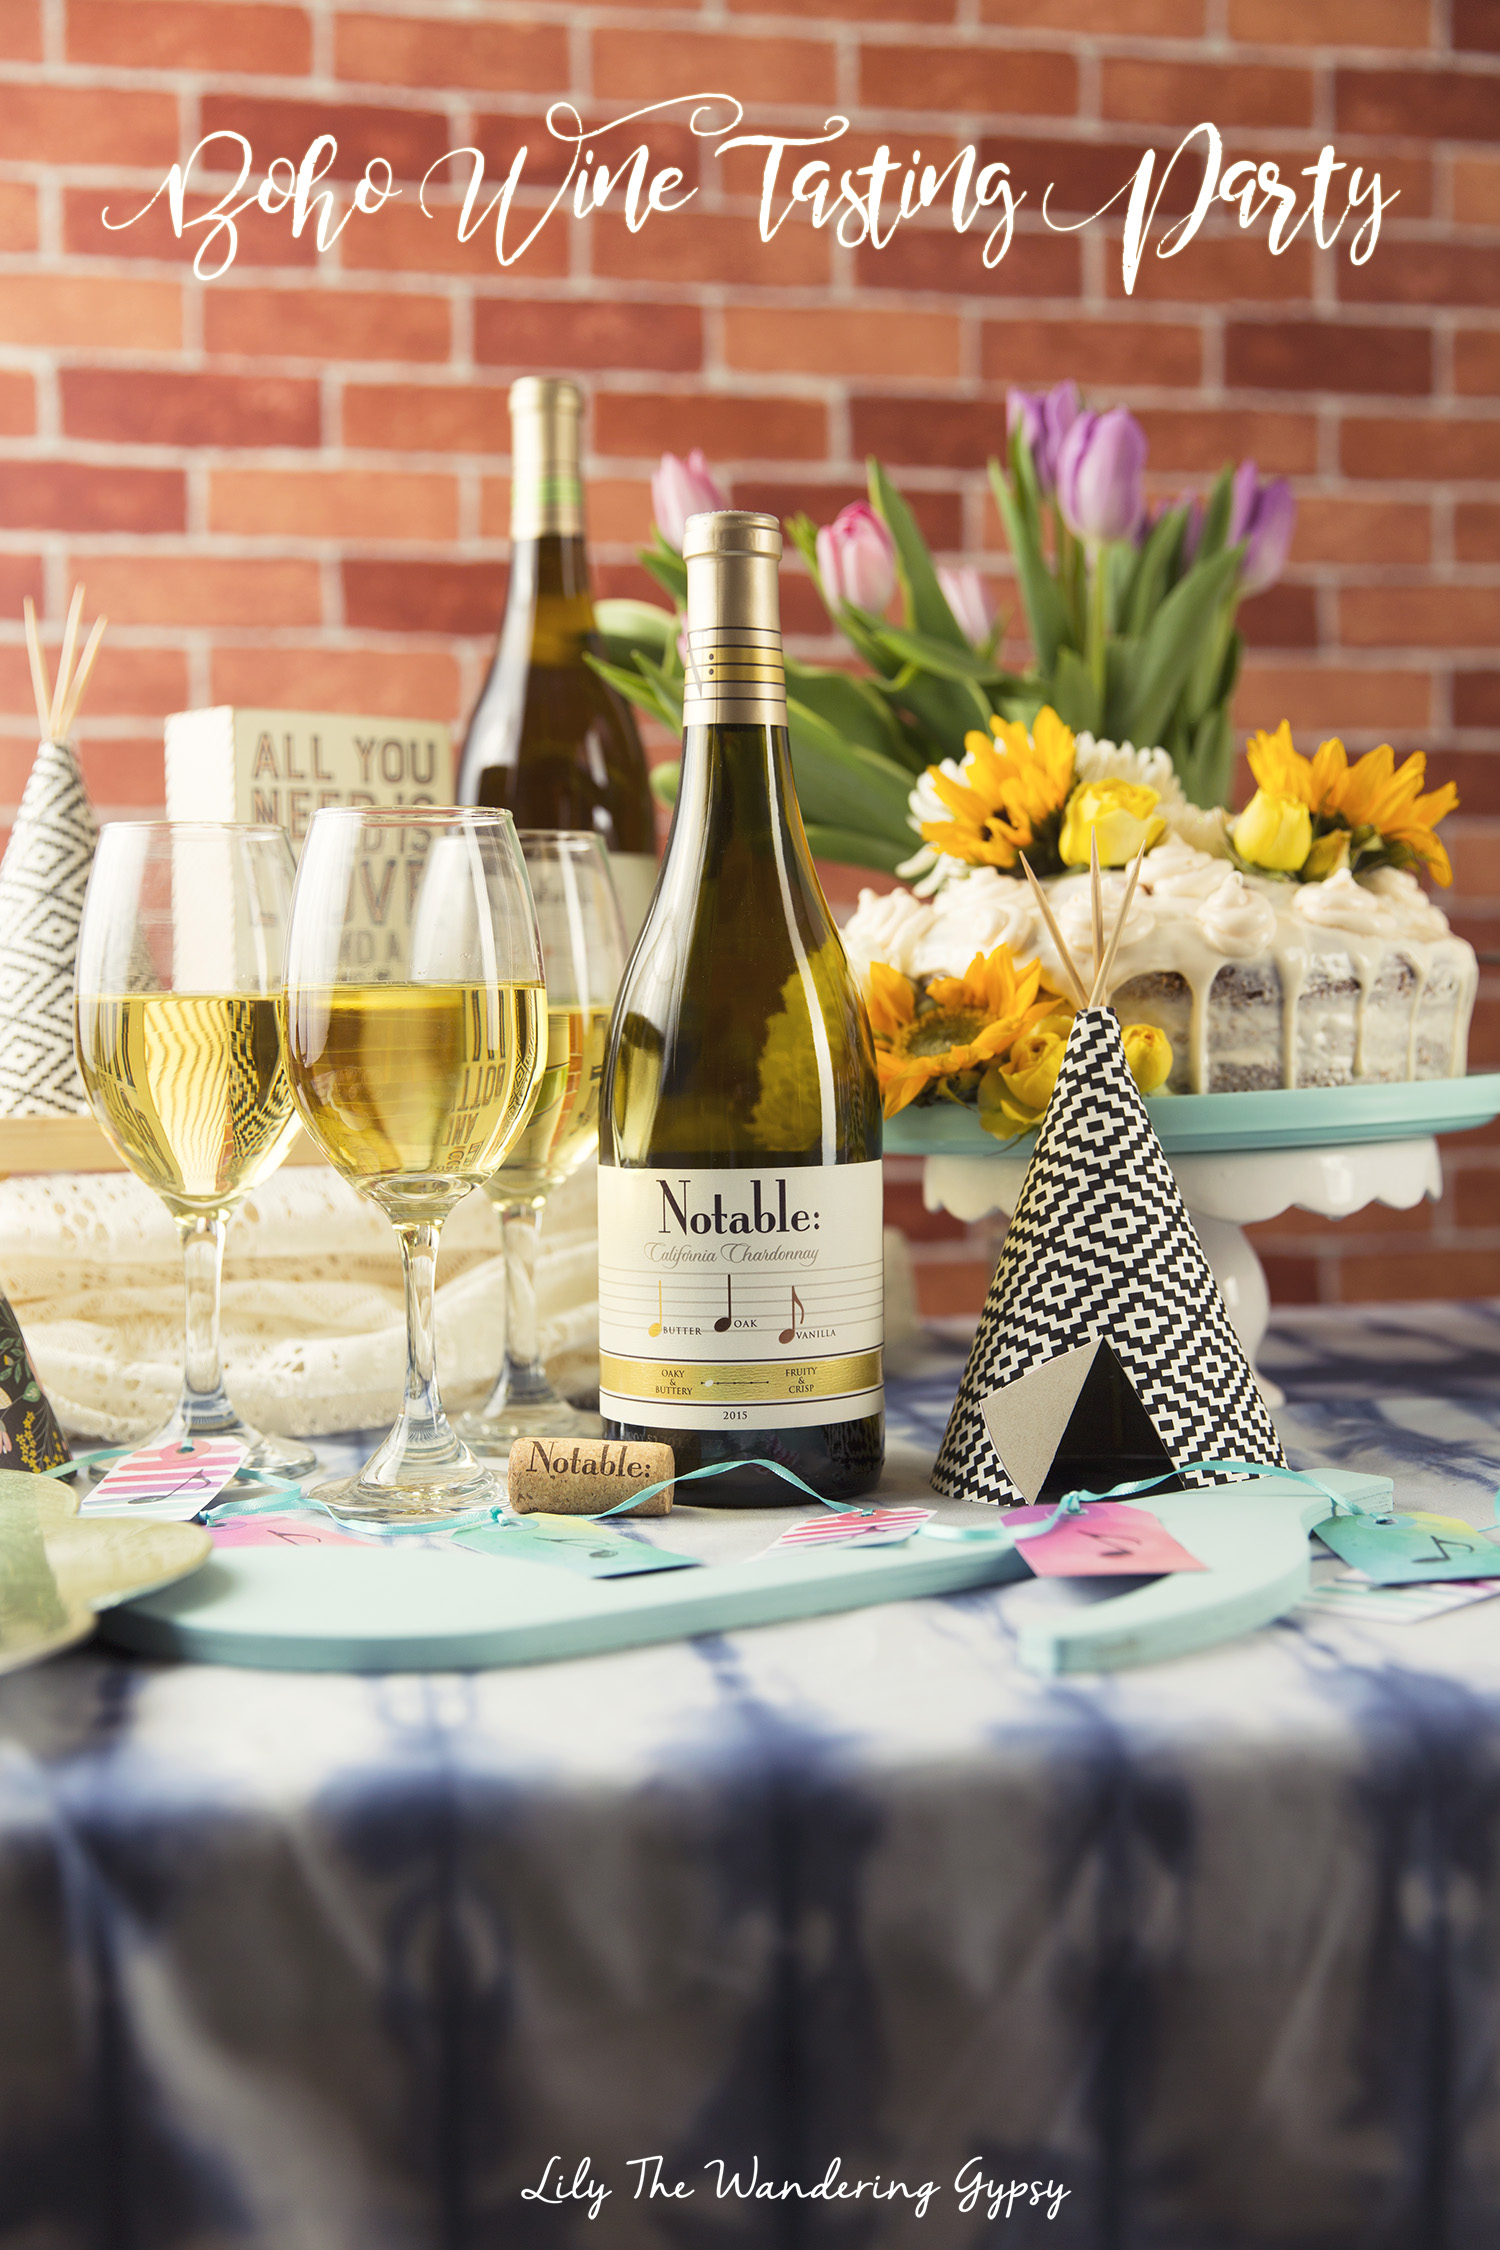 #Chardonnation #SpringWine - Boho Wine Party